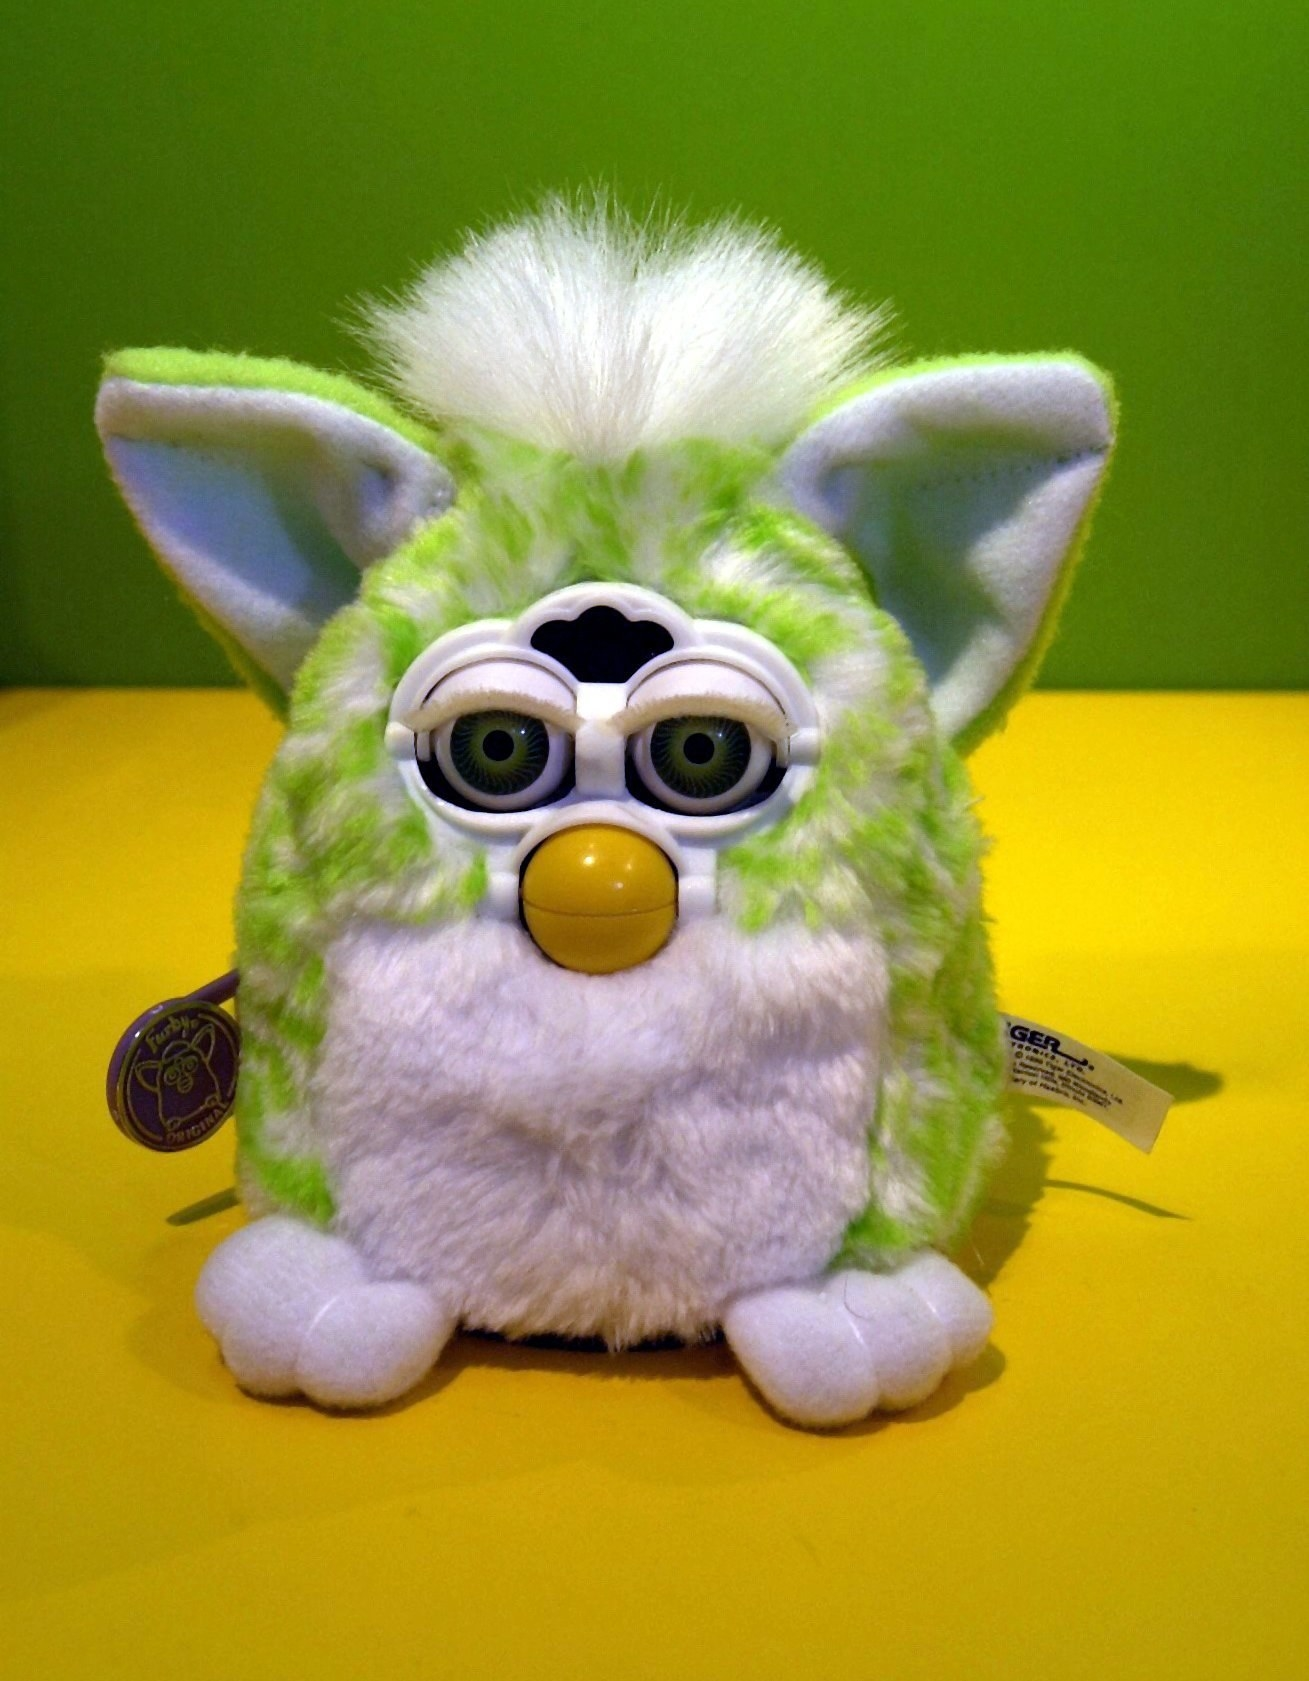 A single Furby sitting on a table